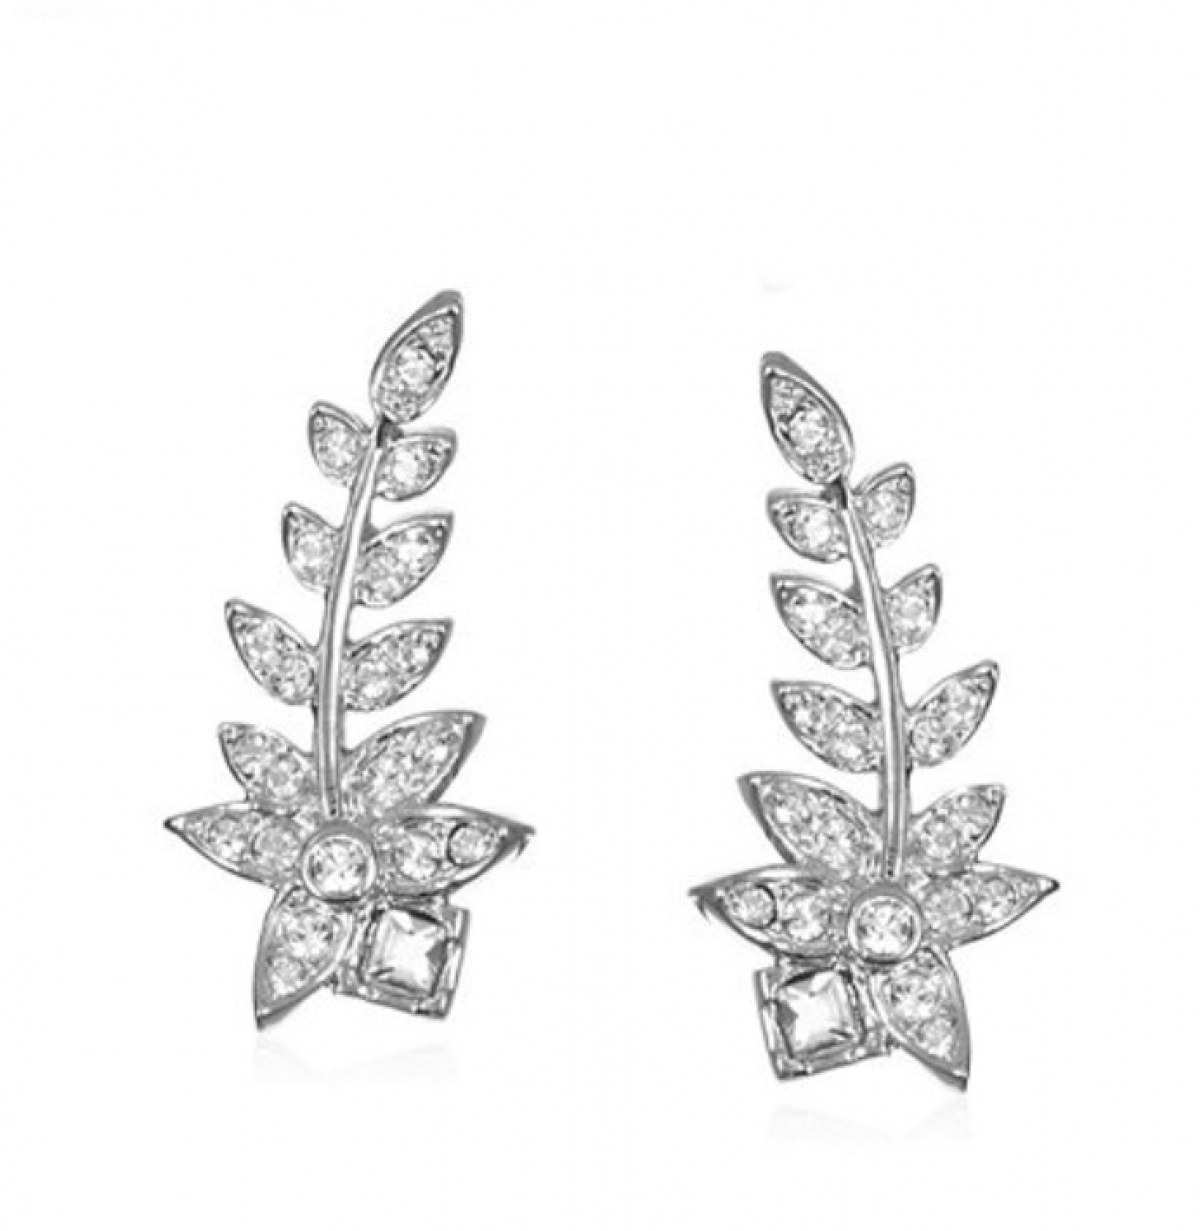 Crystal Fern Ear Climber Earrings Rhodium